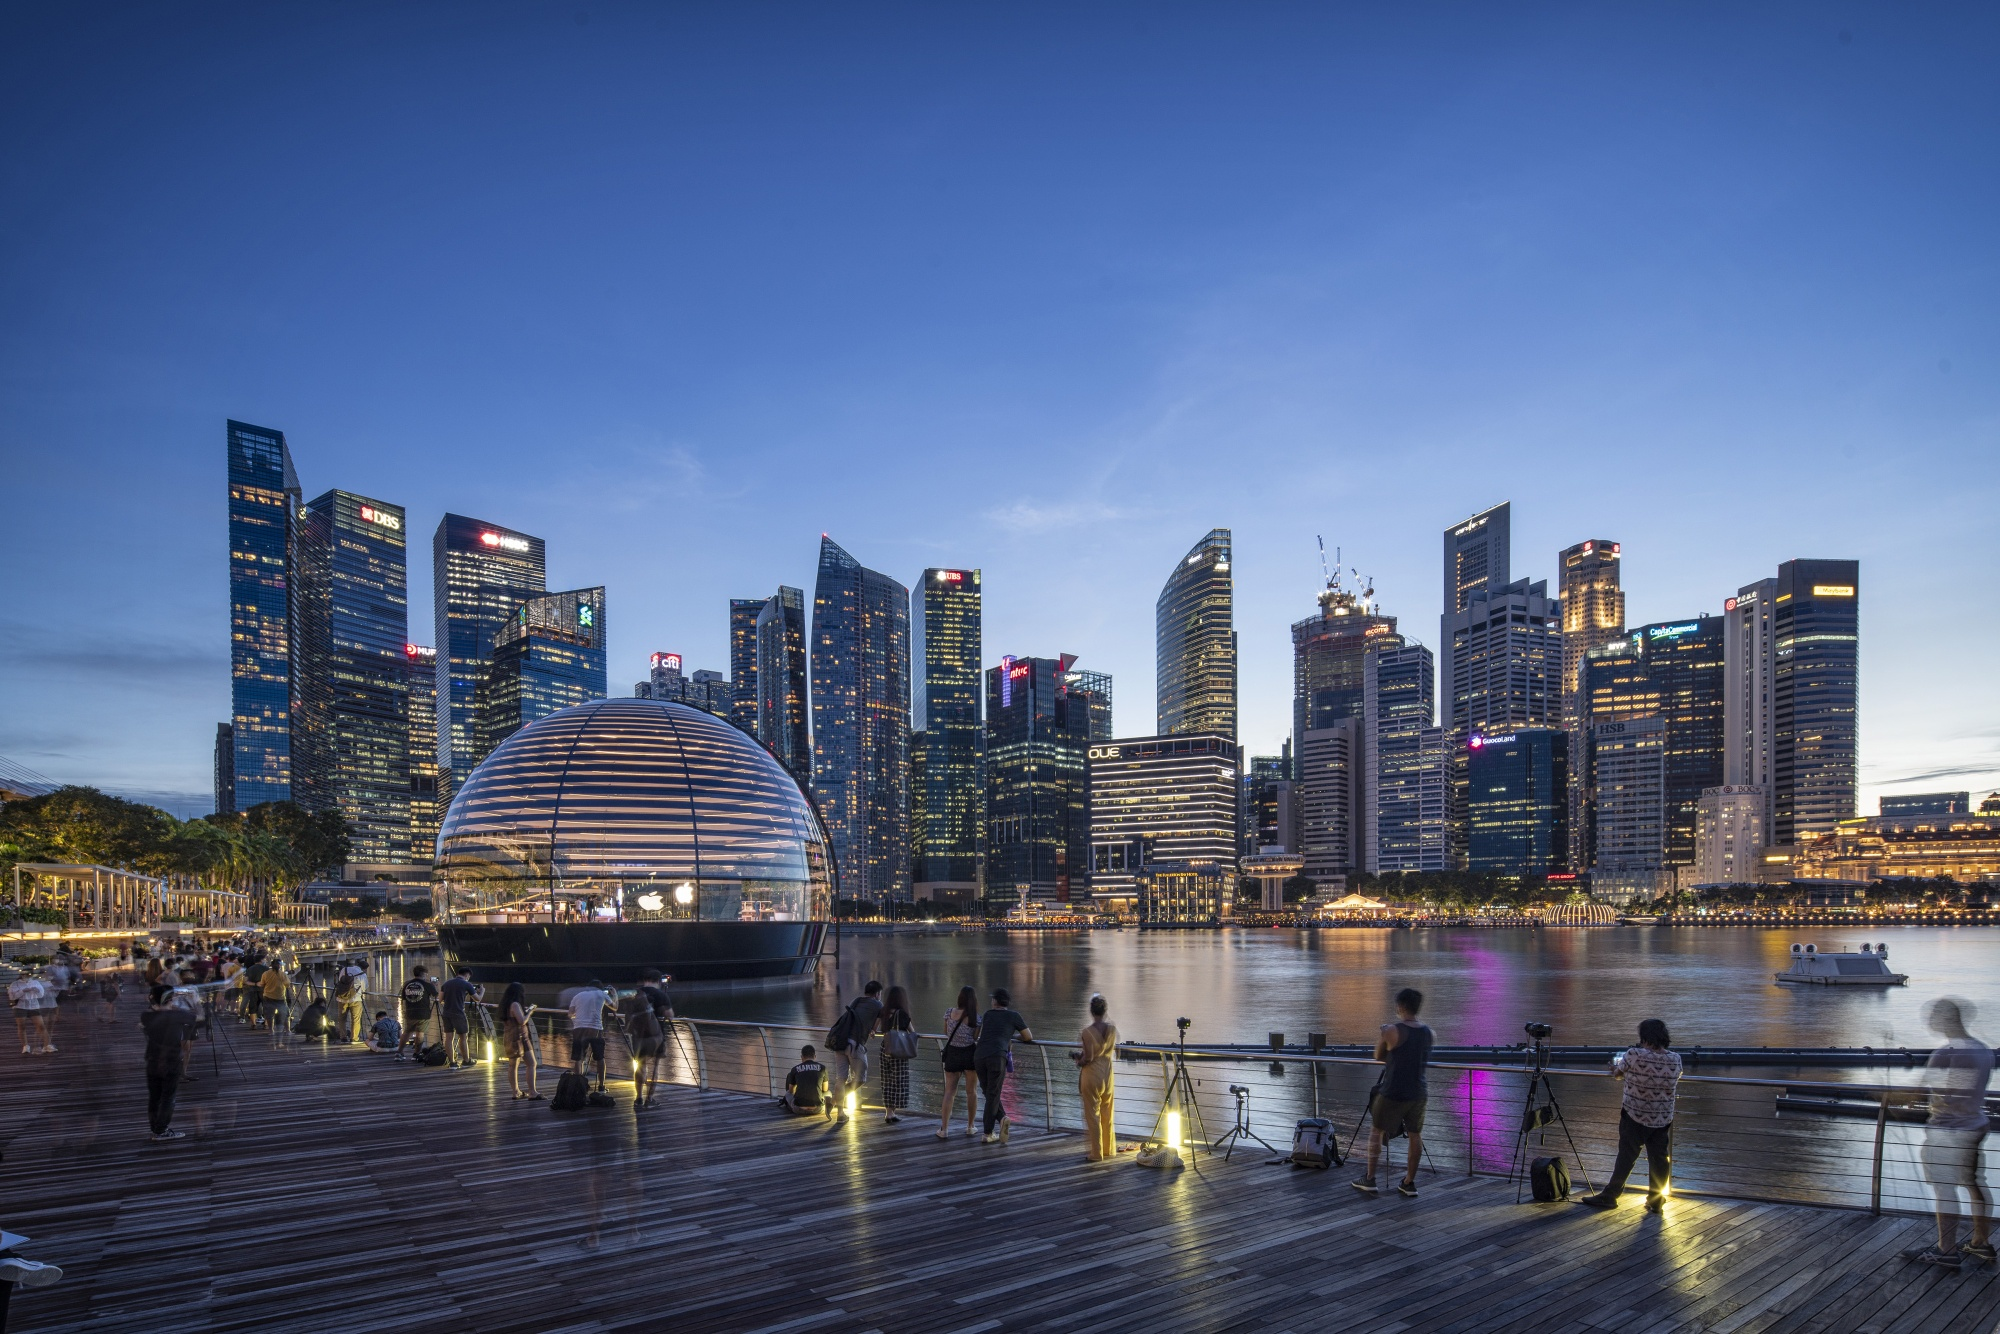 Apple Inc. Opens New Store at Marina Bay Sands